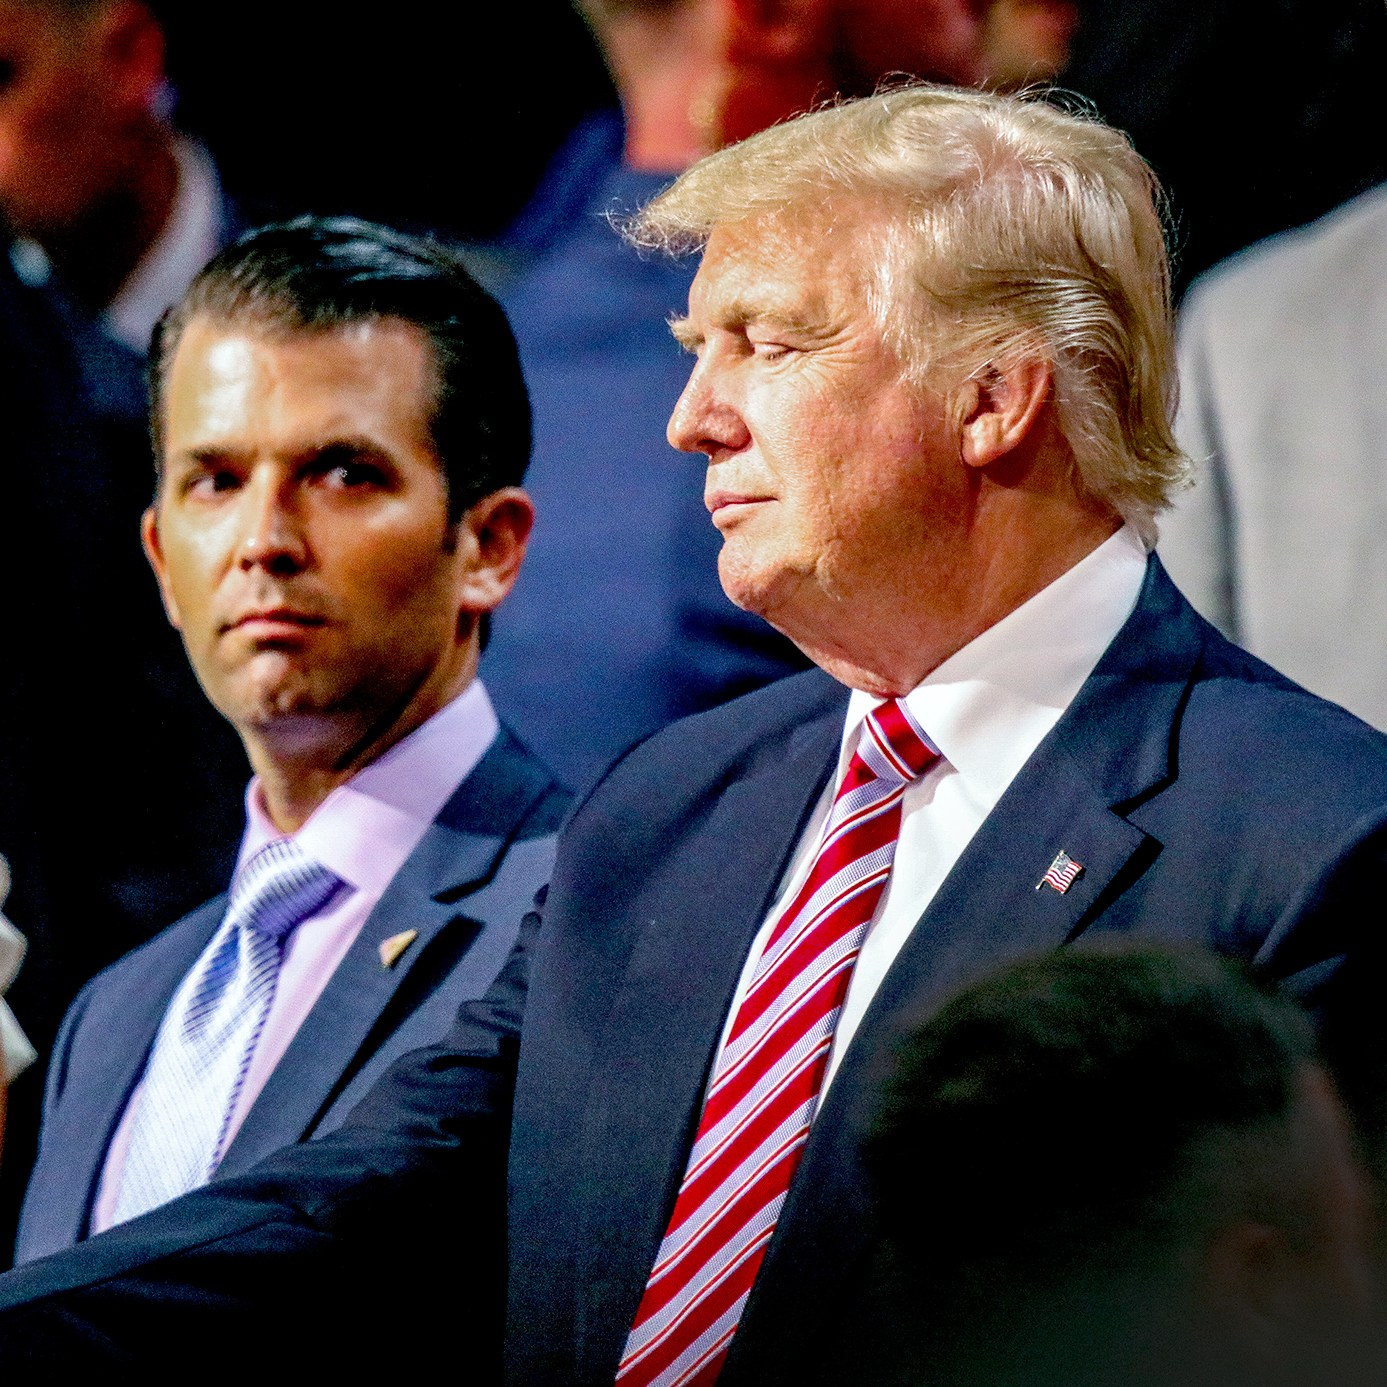 Donald Trump stands with Vanessa Trump and Donald Trump Jr. during the Republican National Convention at the Quicken Arena in Cleveland, Ohio, on July 20, 2016.